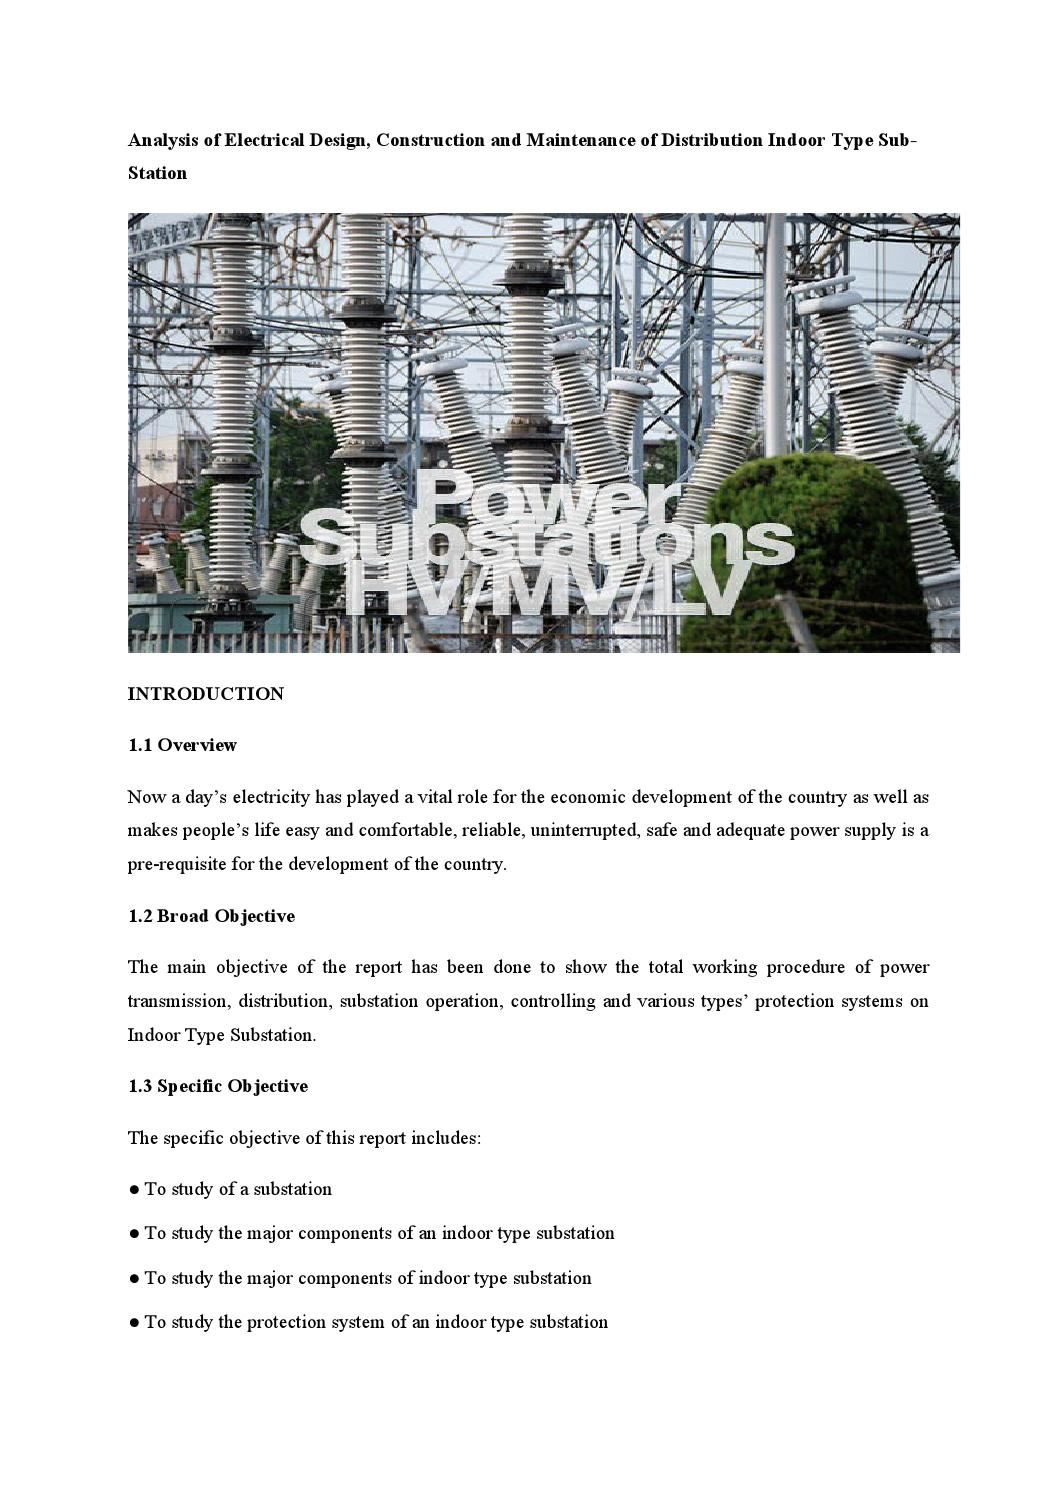 Analysis of electrical design, construction and maintenance of distribution  indoor type sub station